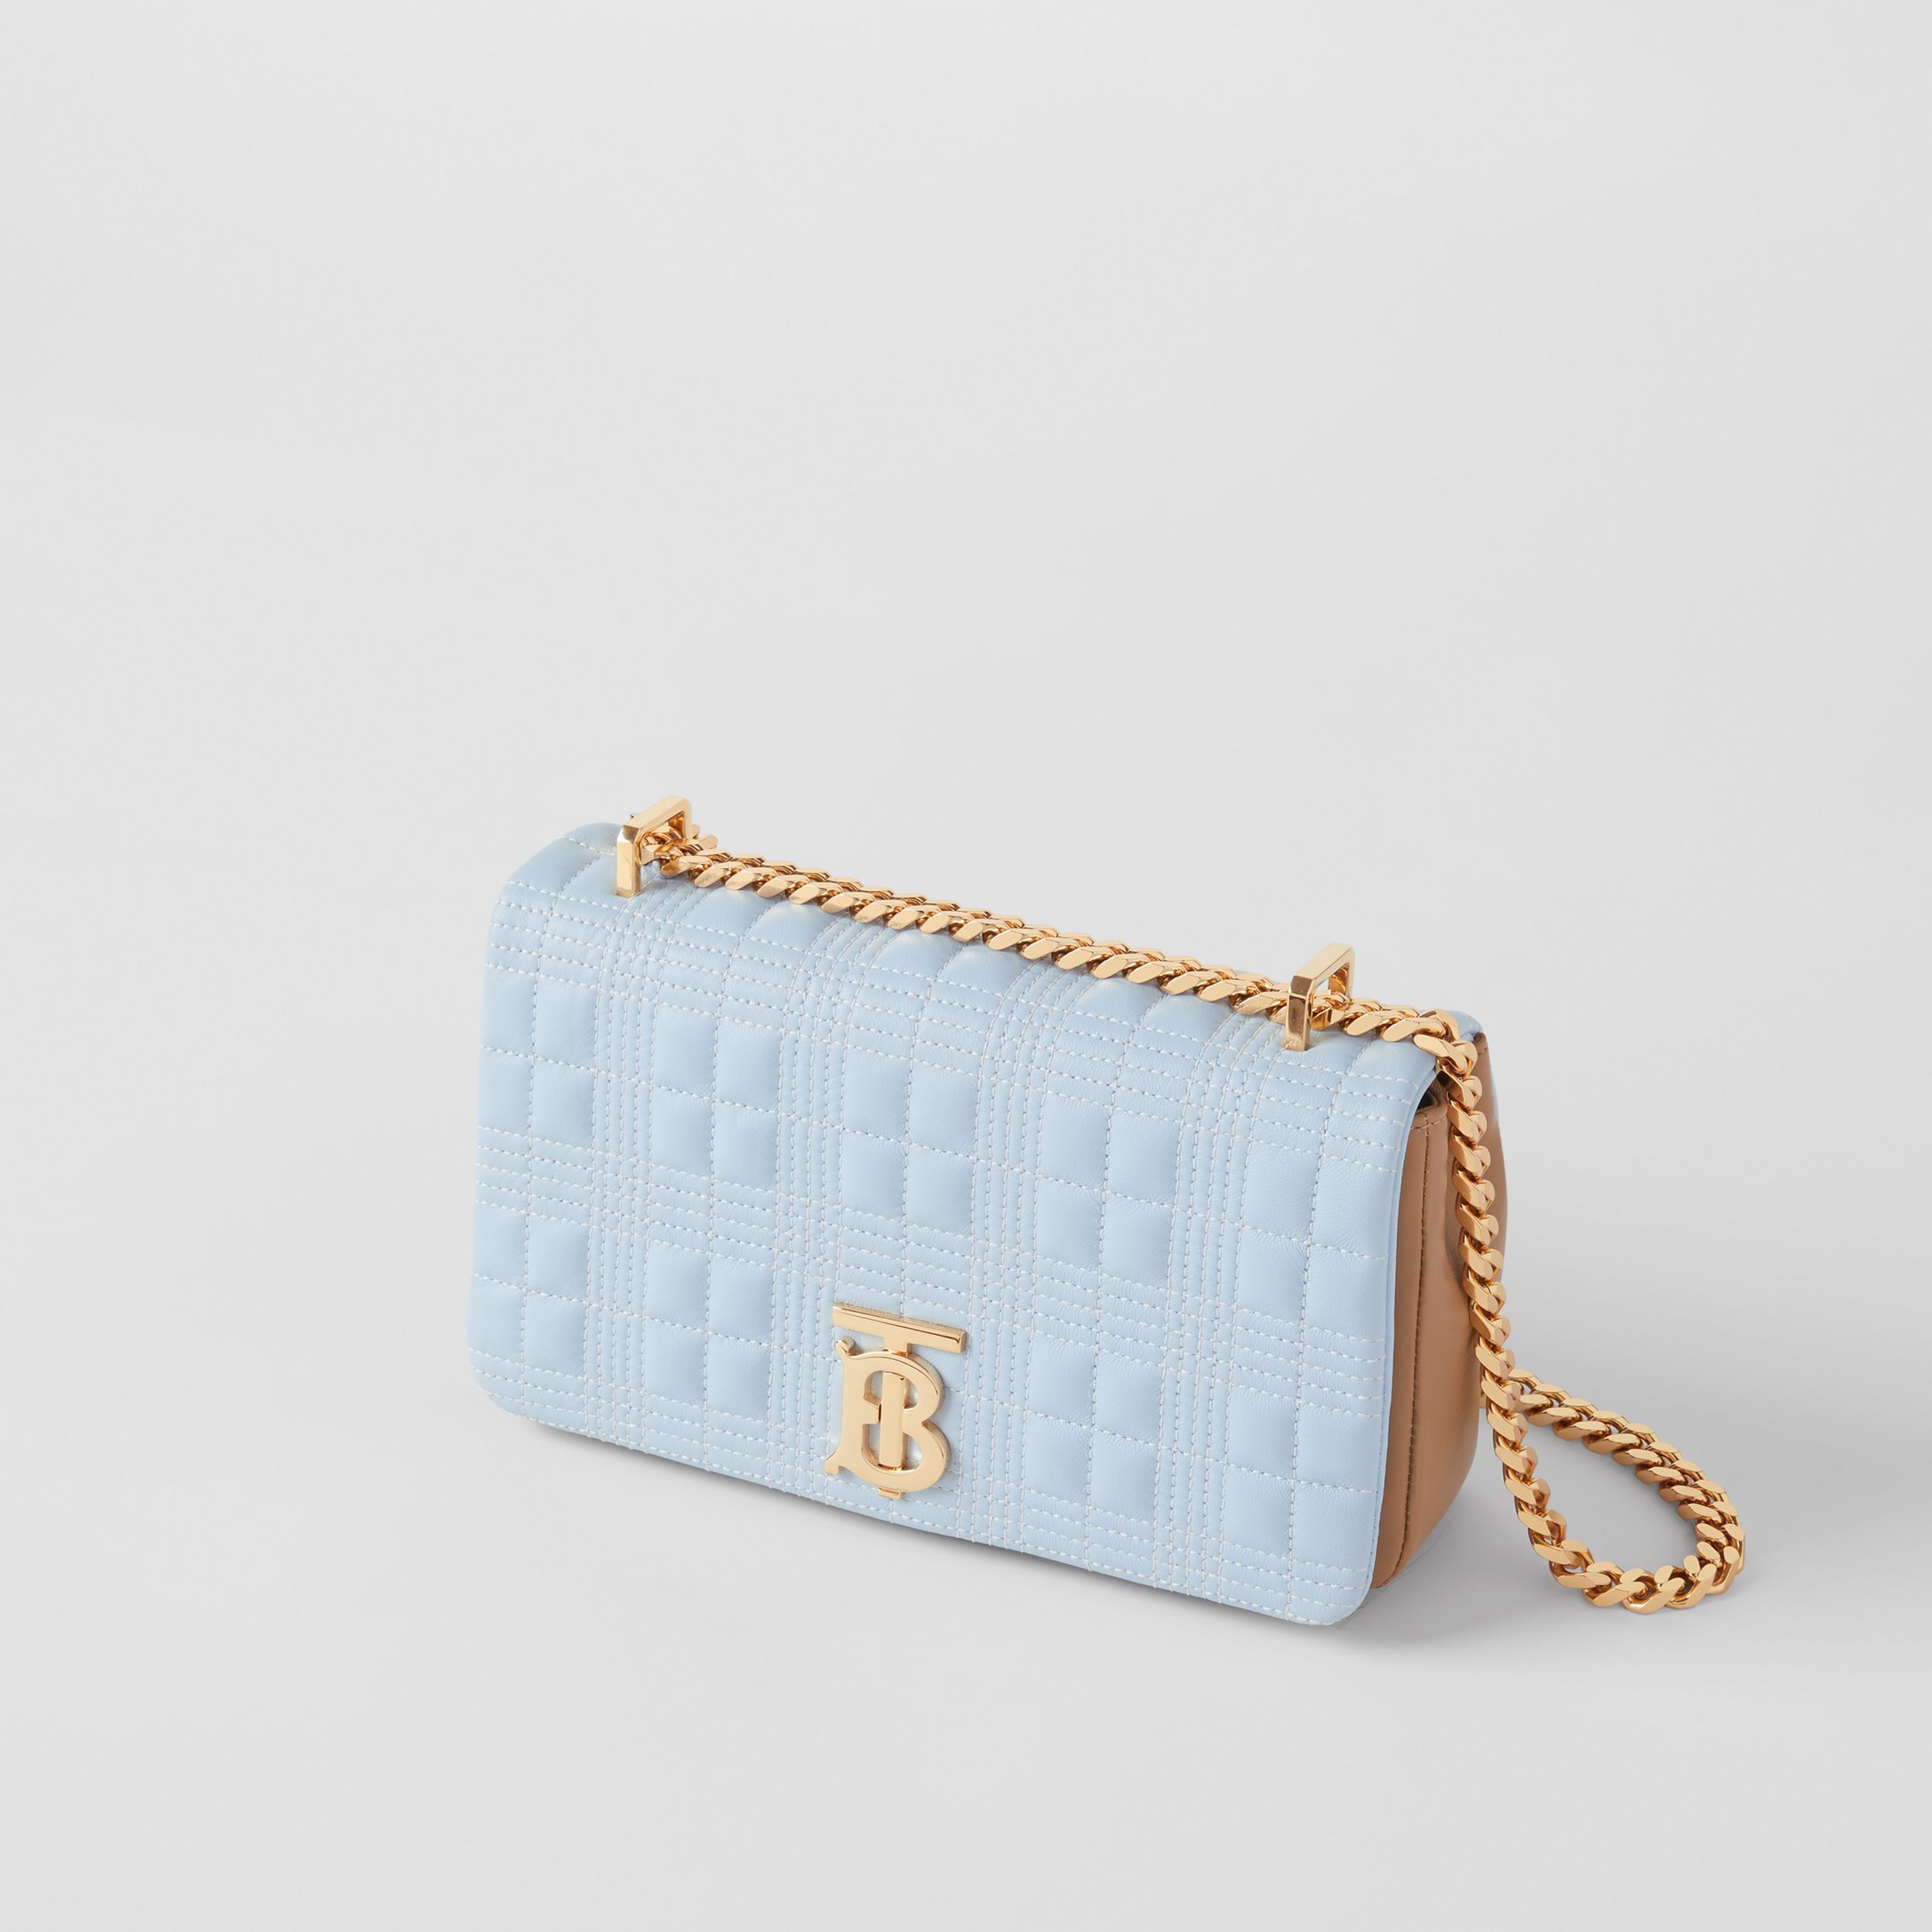 Small Quilted Tri-tone Lambskin Lola Bag in Pale Blue/camel/black - Women | Burberry United Kingdom - 4